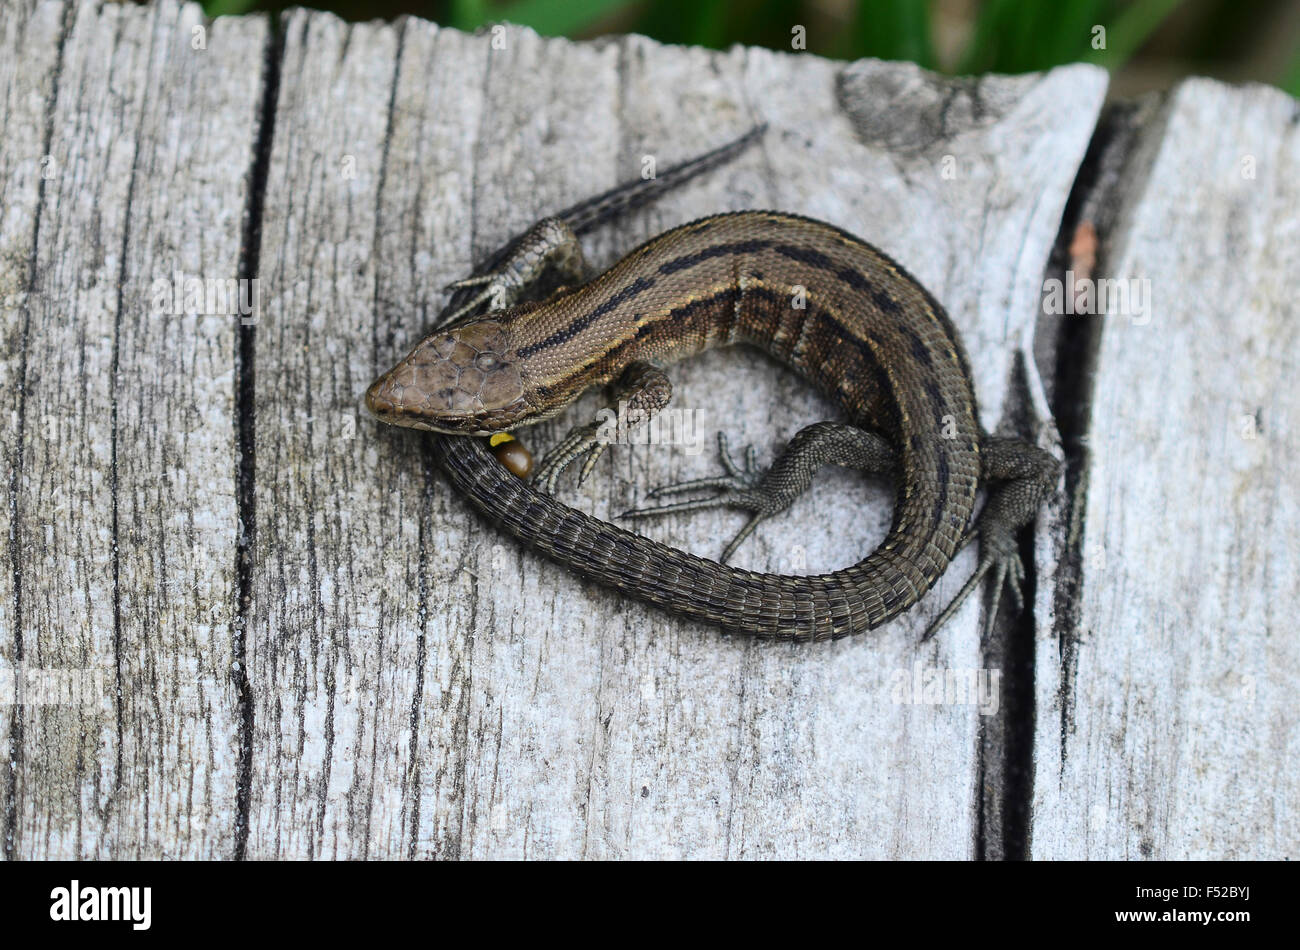 Common lizard - Stock Image